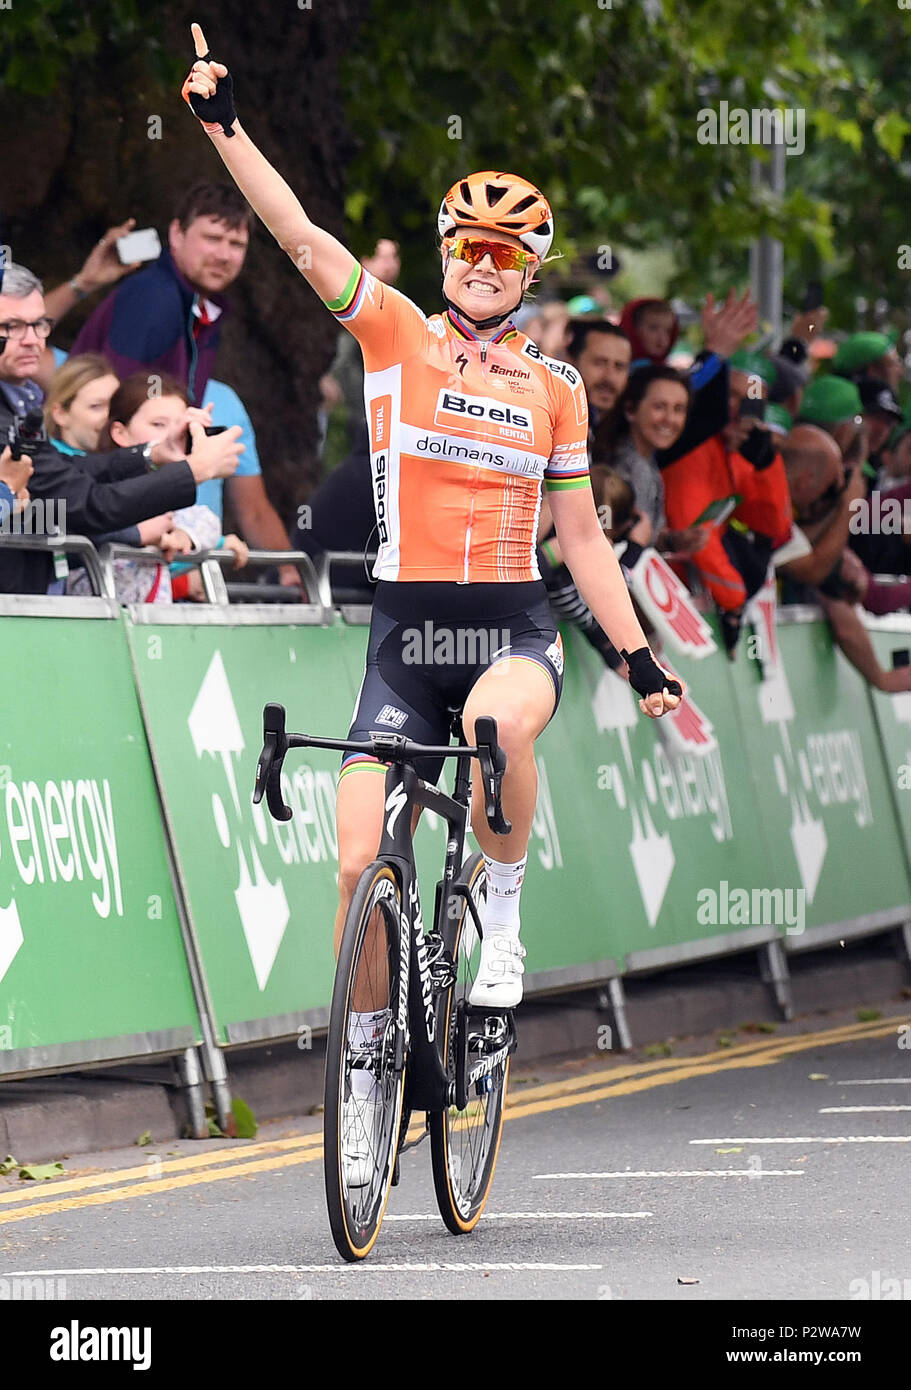 546dede68 Boels Dolmans Cycling Team s Amalie Dideriksen celebrates winning stage  four of the OVO Energy Women s Tour from Evesham to Worcester.